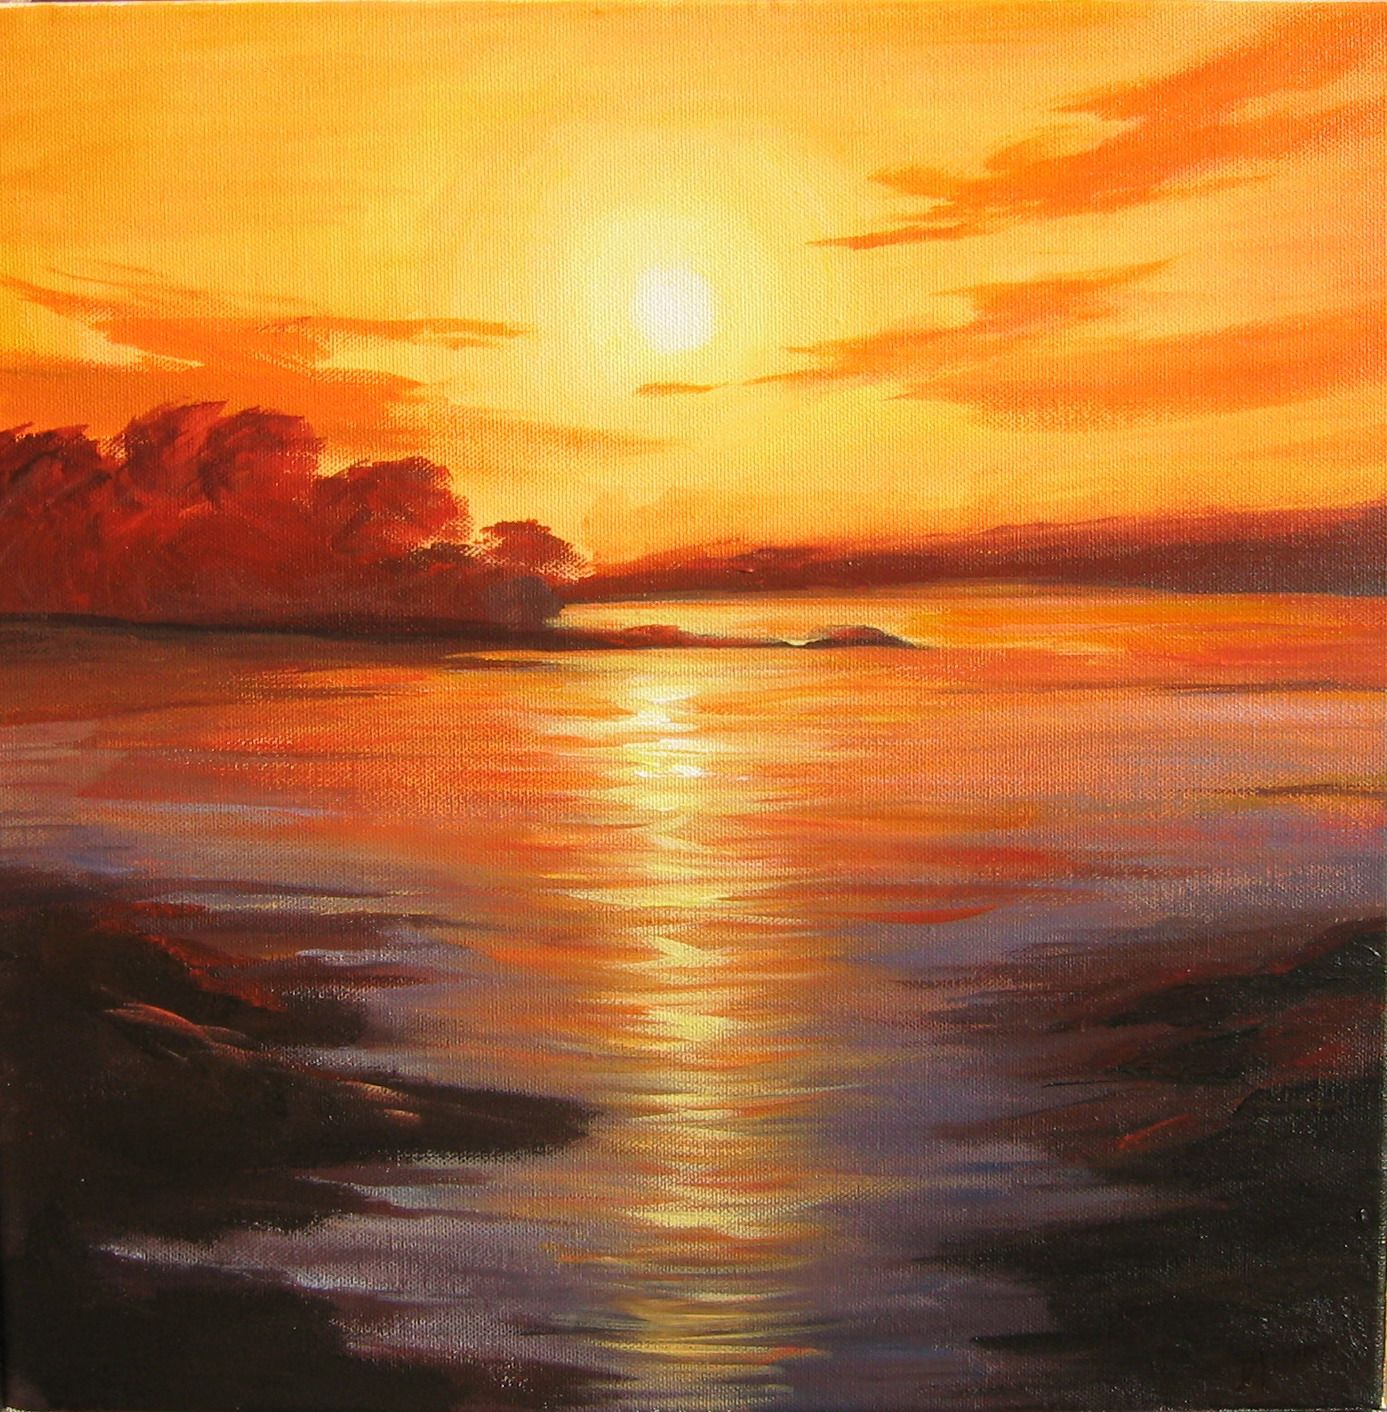 Breathtaking Sunrise Paintings Sunset Or Sunrise By Bredereck